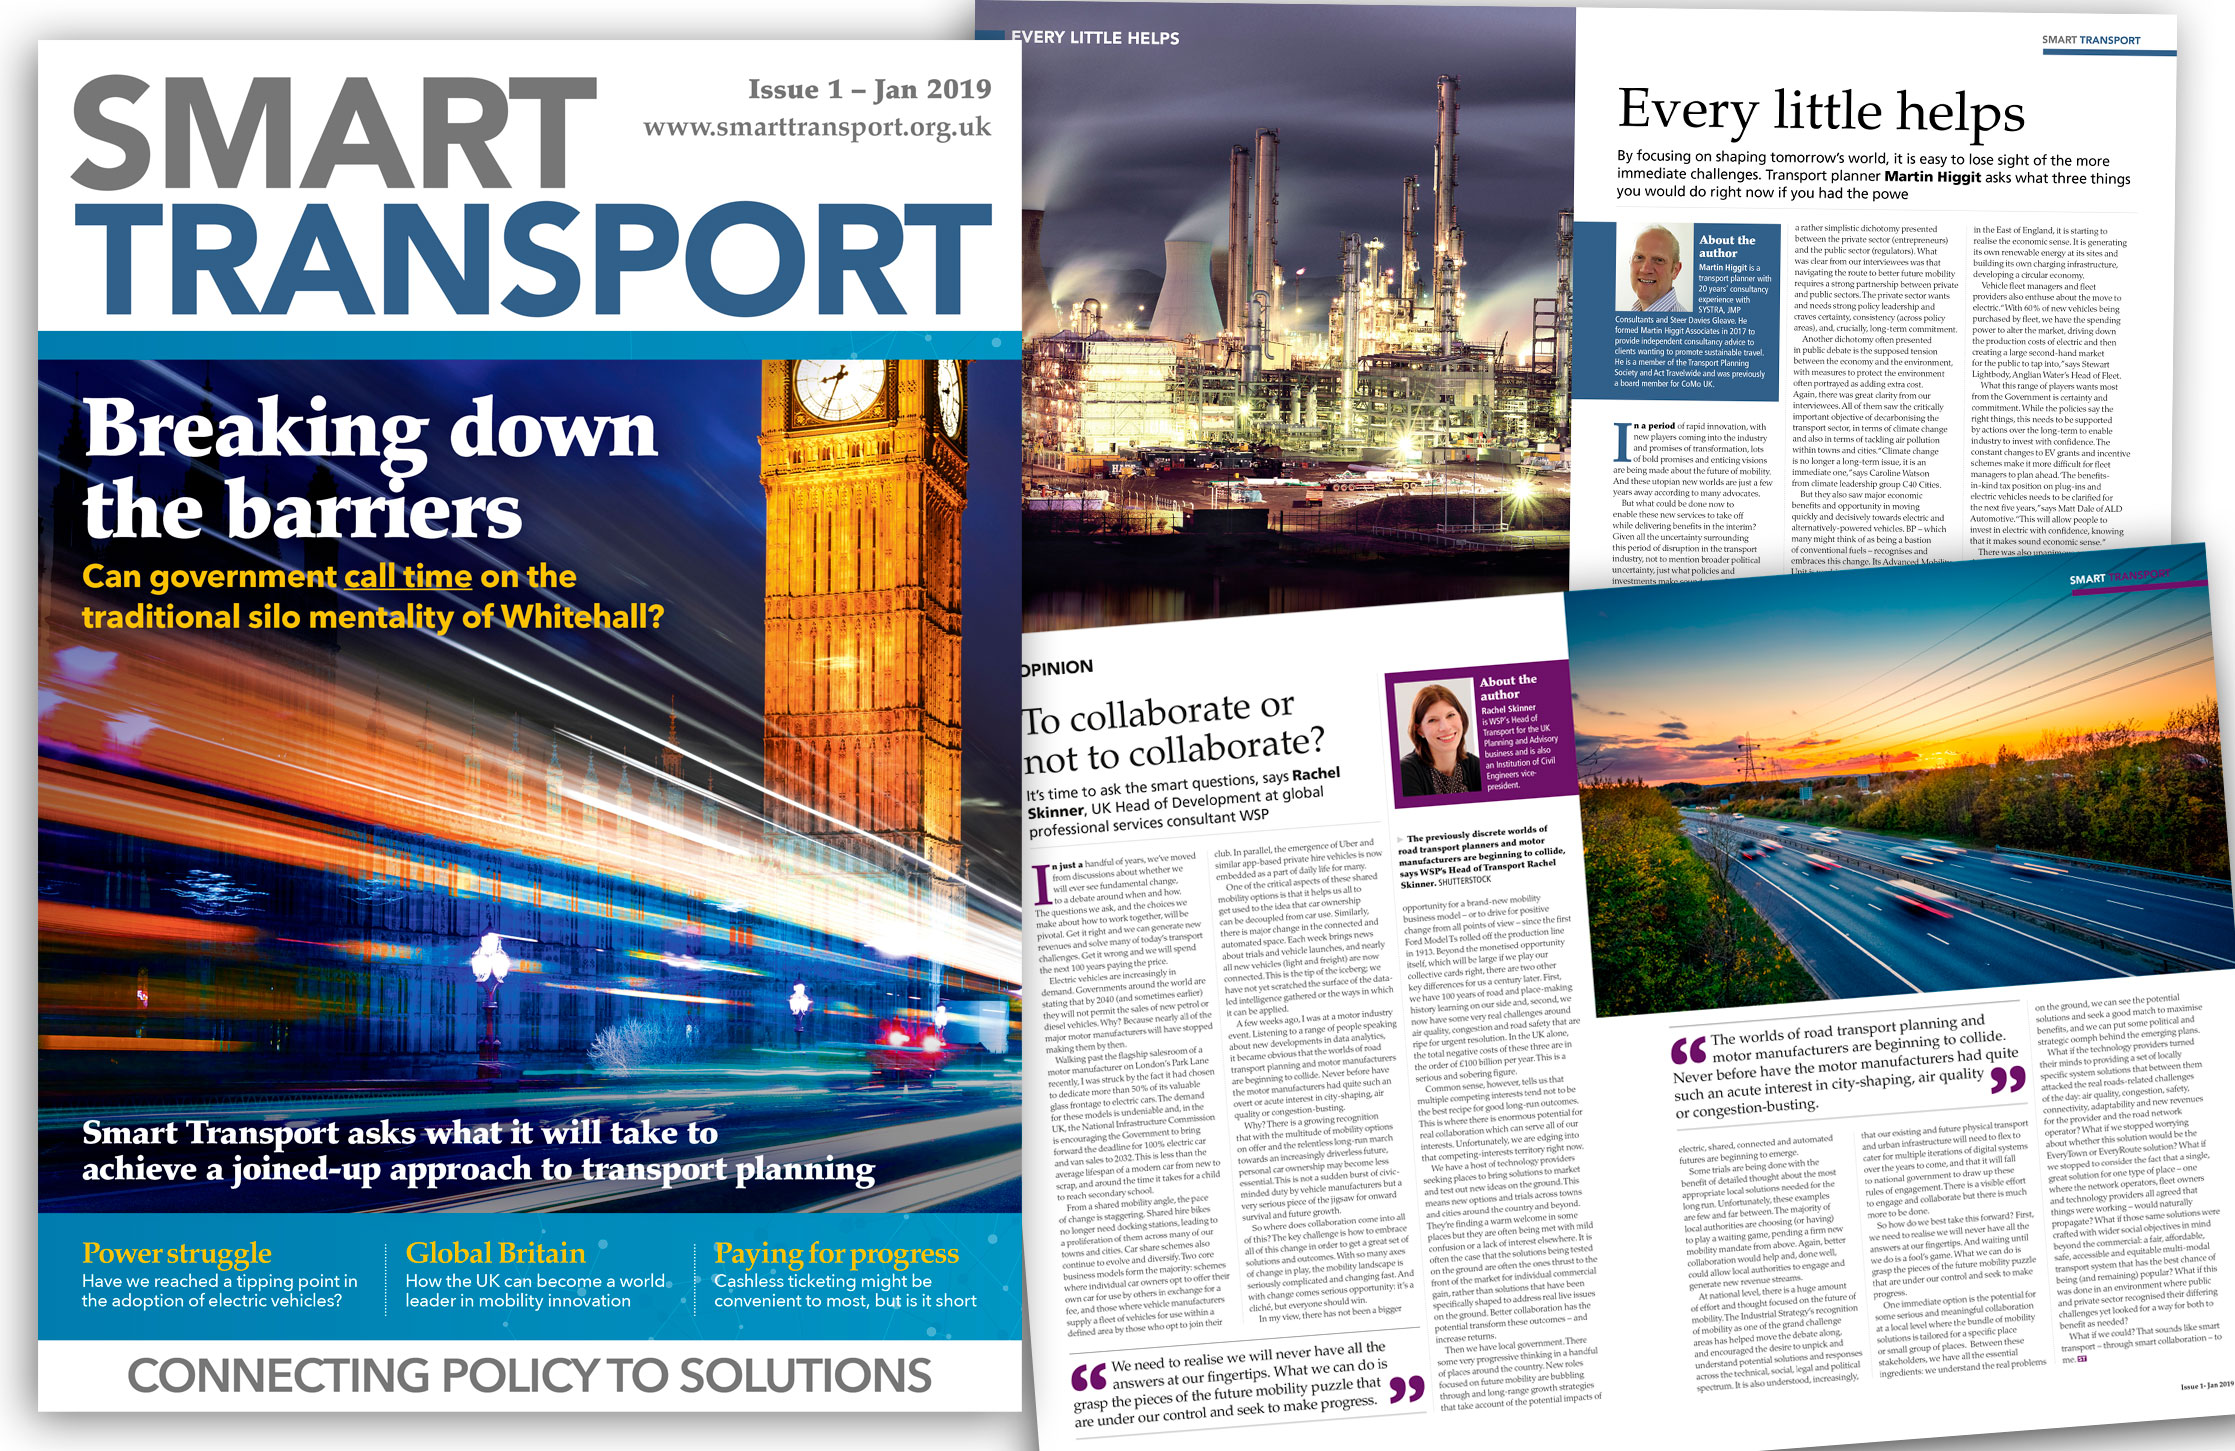 Design and artwork of new green transportation magazine for the fleet market